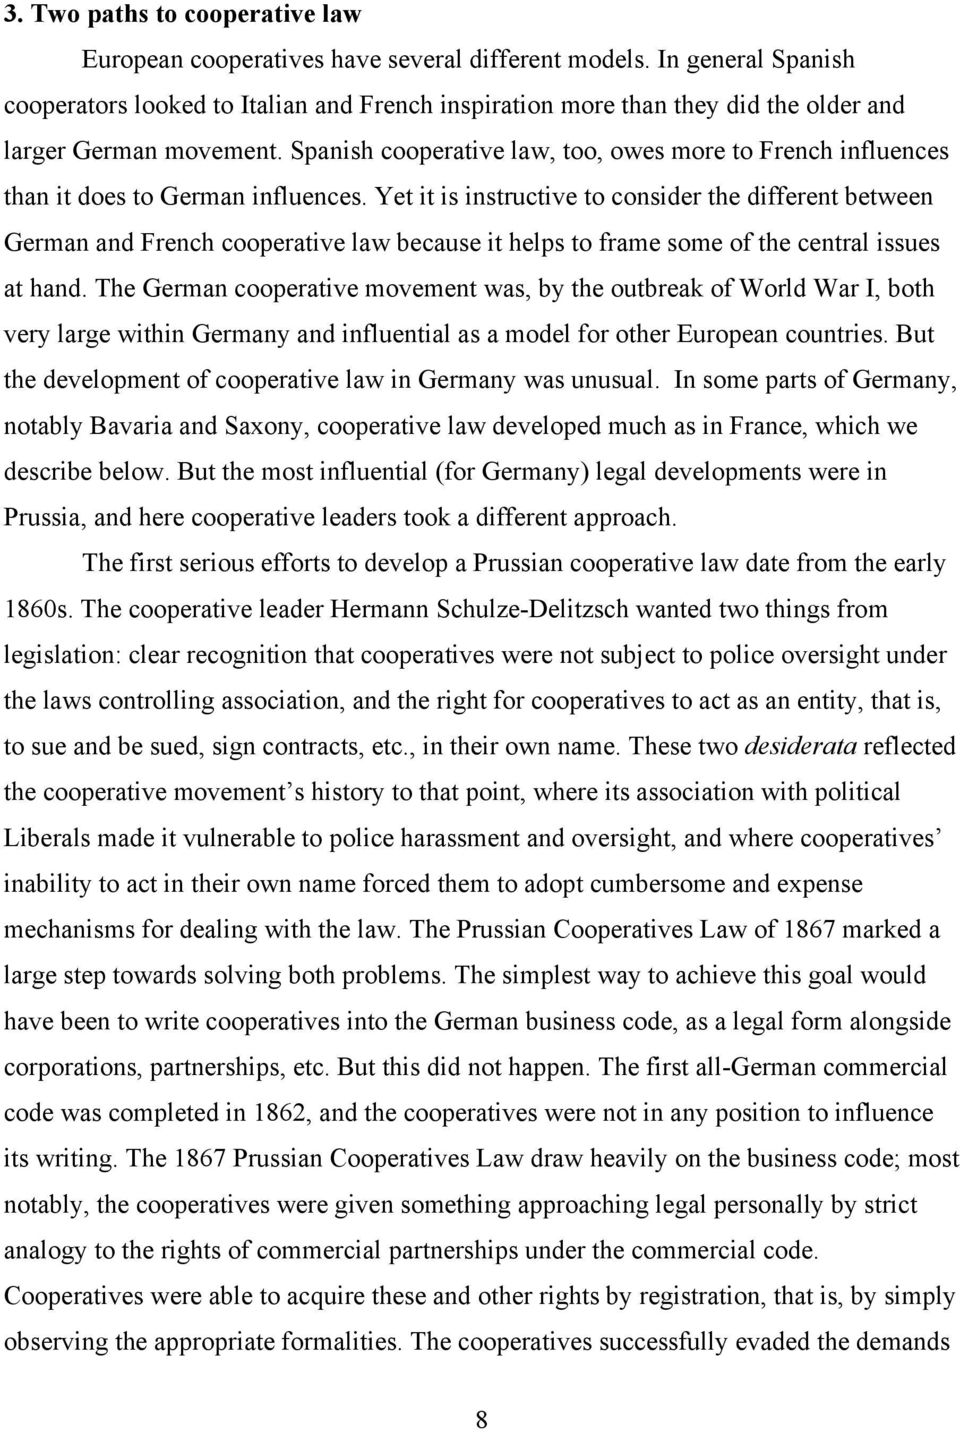 Spanish cooperative law, too, owes more to French influences than it does to German influences.